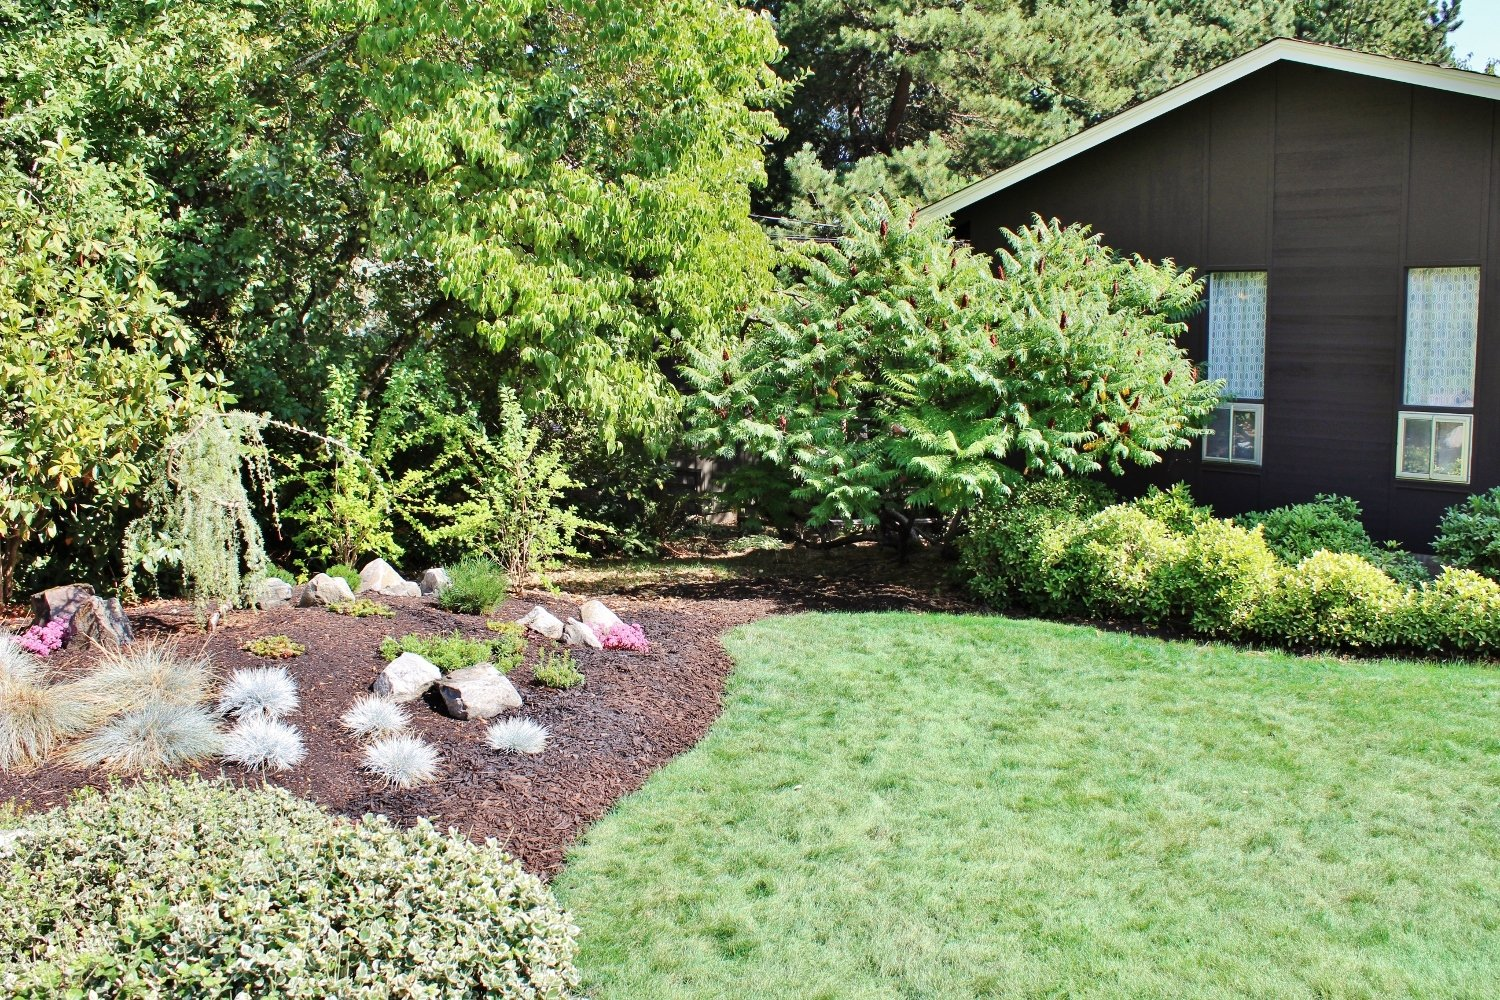 How To Create A Landscape Berm With Easy Plants